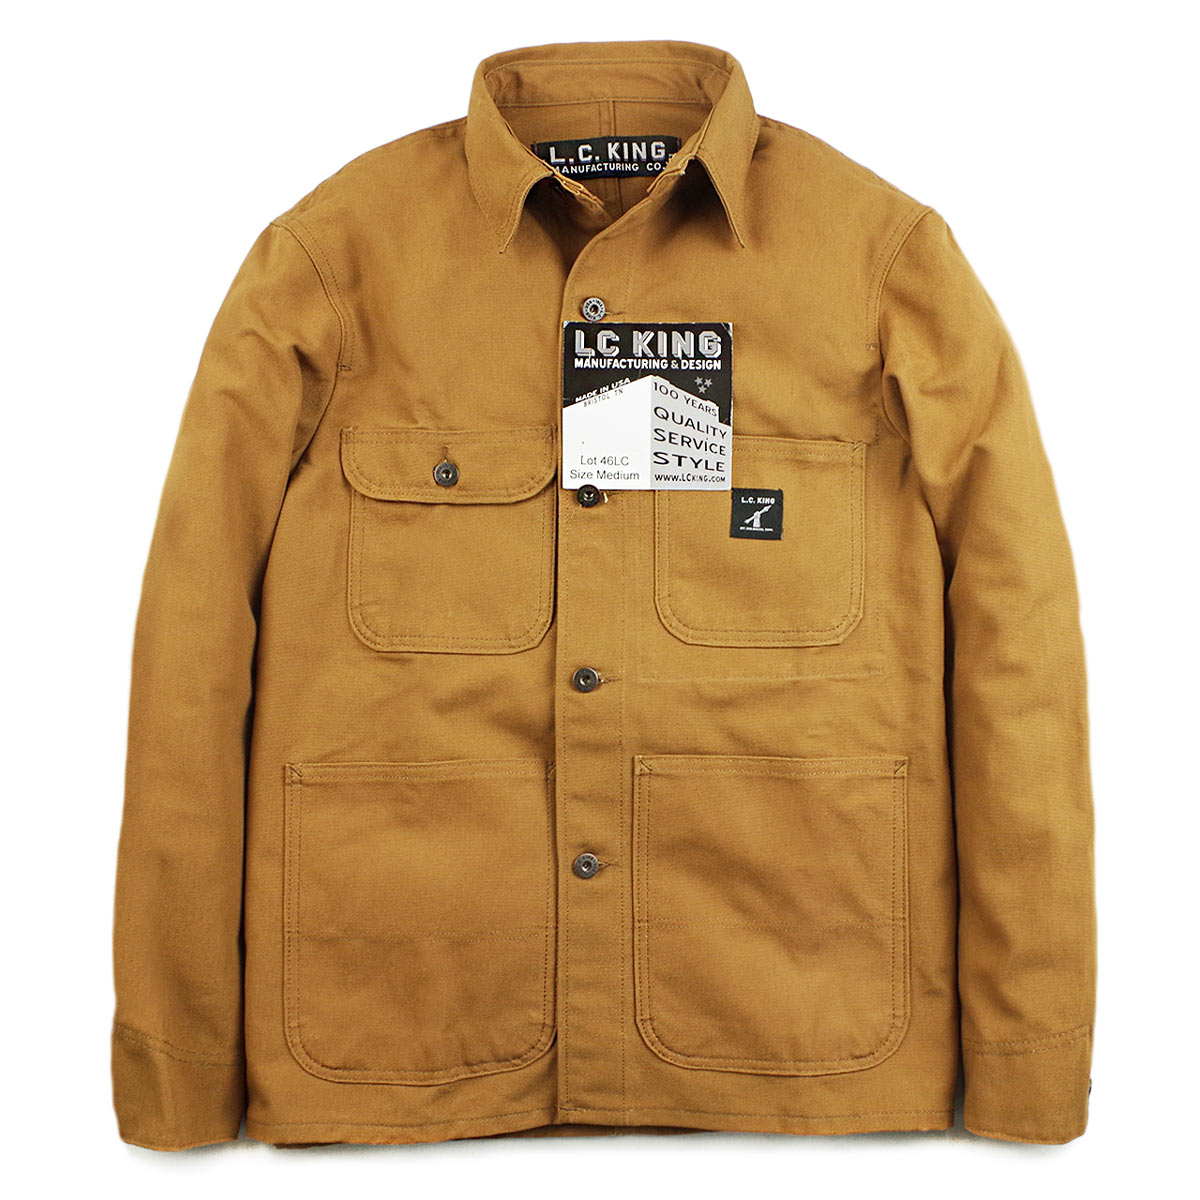 L. Charles King LOT46LC カバーオールブラウンダックチョアコート MADE IN USA (L.C.KING work jacket made in the United States made in the United States)